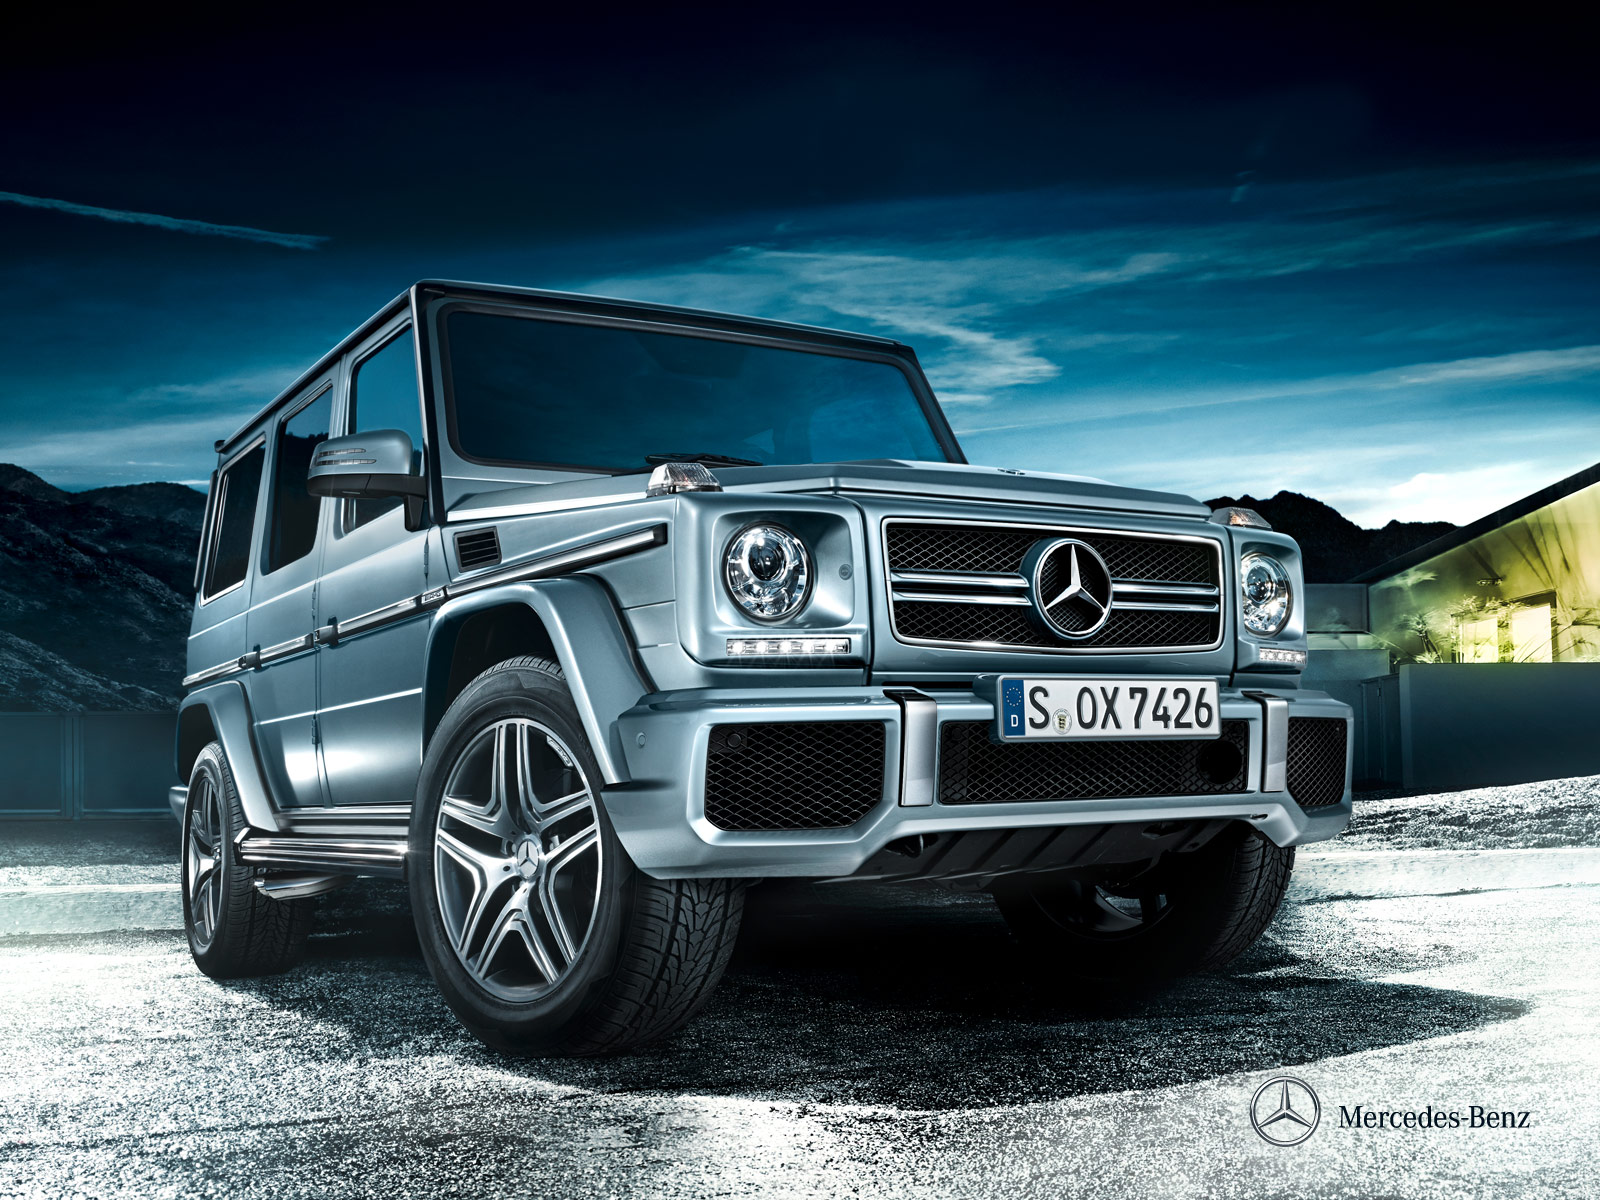 Mercedes benz t dy g mercedes benz autorizovan for Mercedes benz g wagon 2012